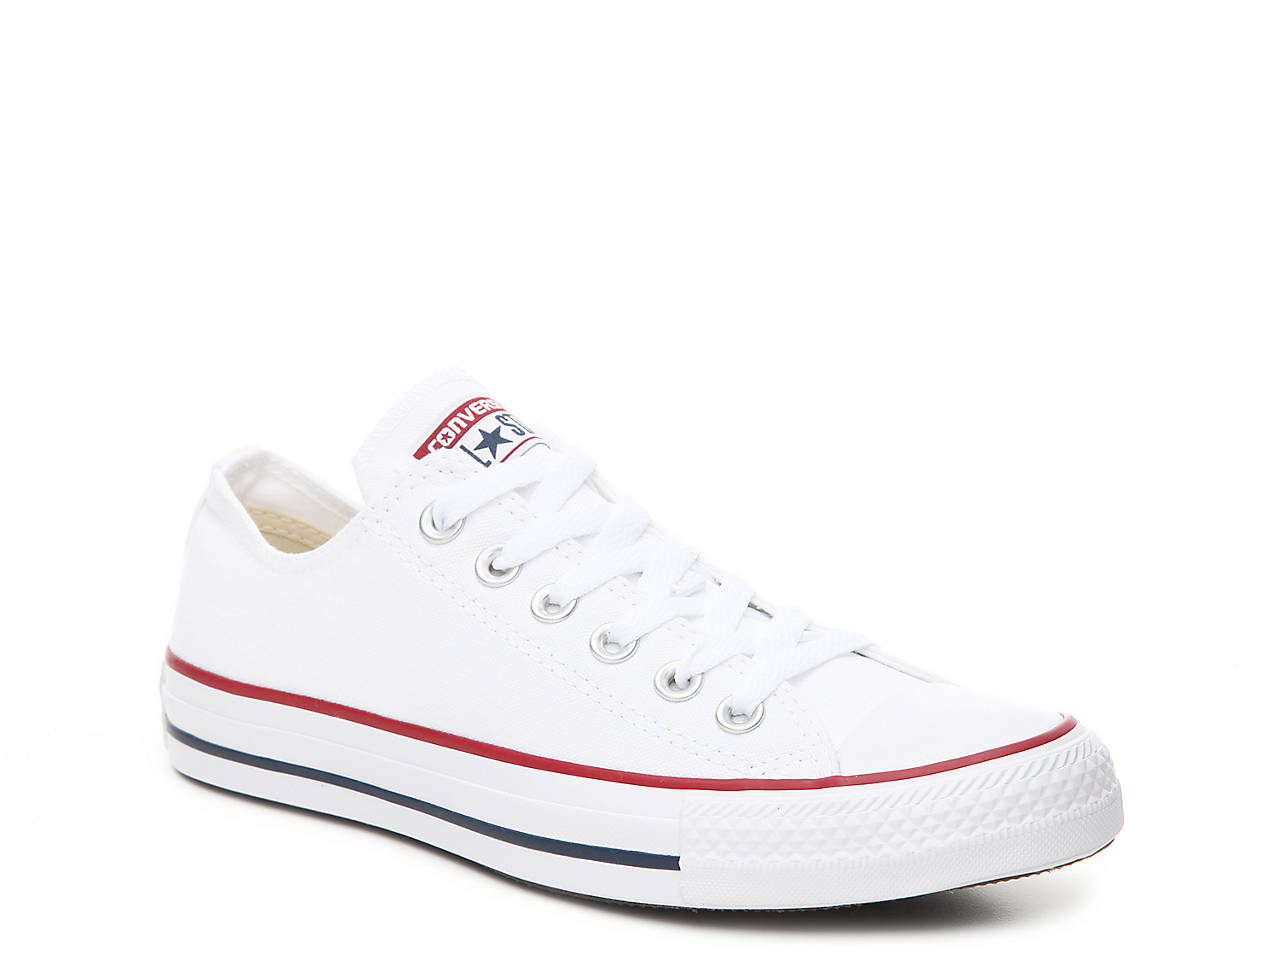 278c12d2bdbcff Converse All-Star High Tops   Sneakers